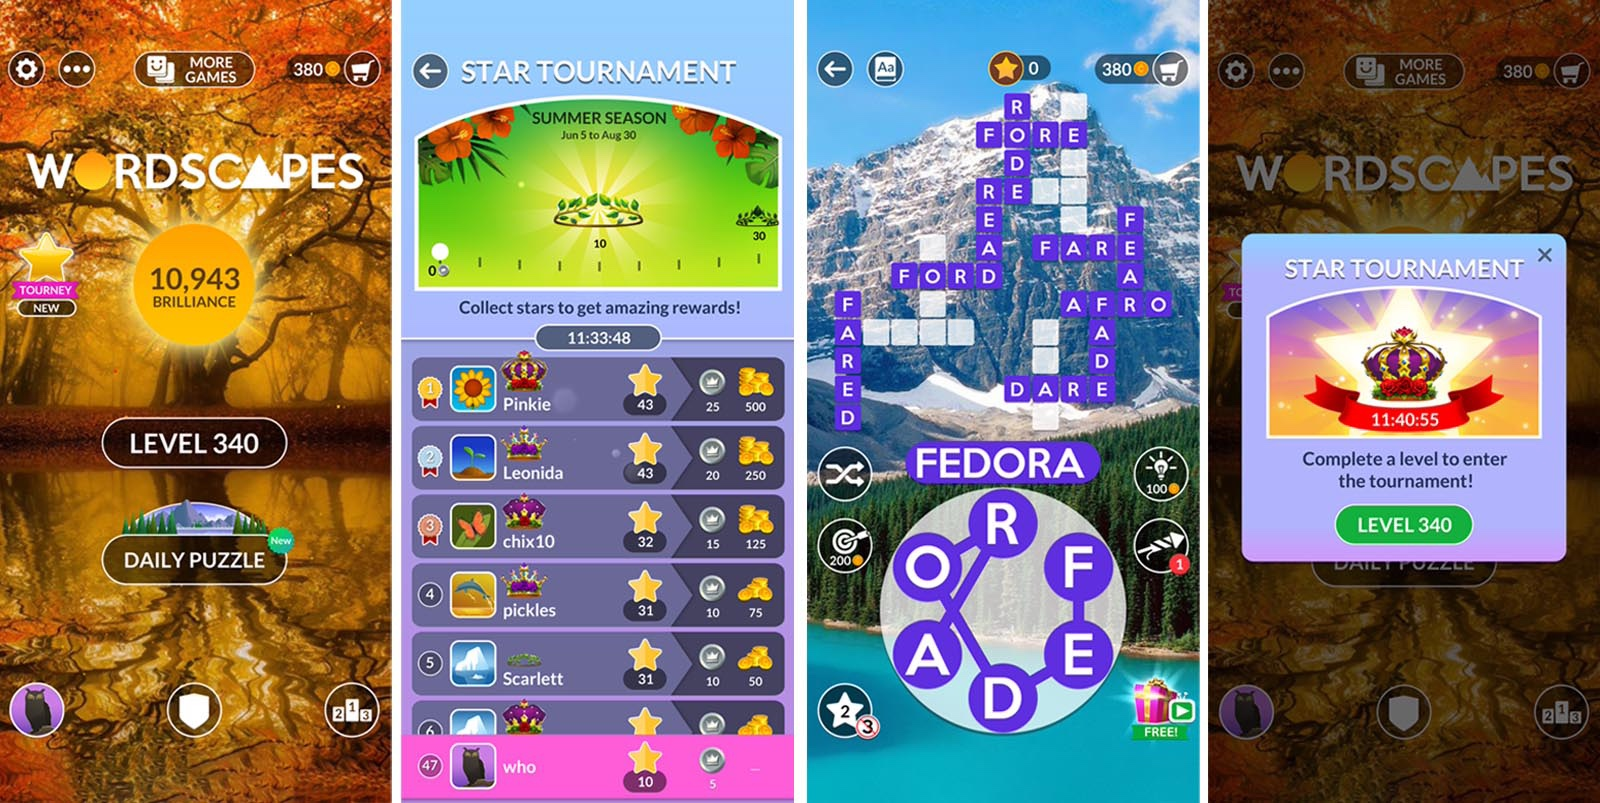 screenshot of Wordscapes tournament